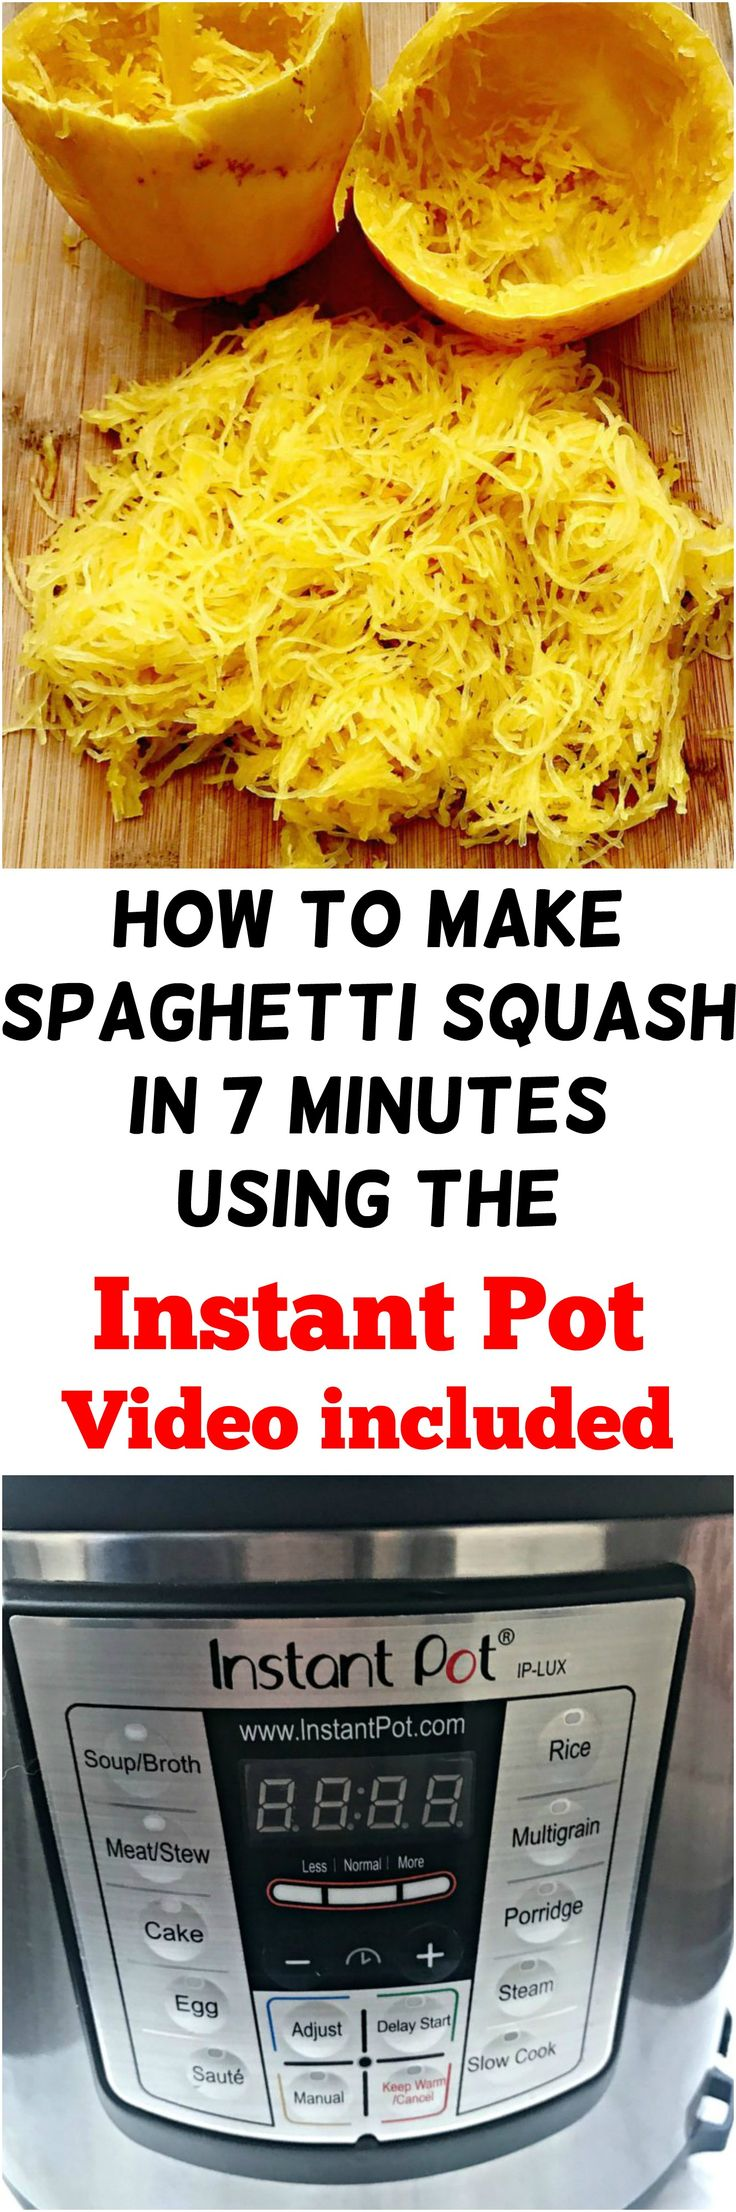 how to make spaghetti squash in 7 minutes using the Instant Pot. DIY recipe video tutorial